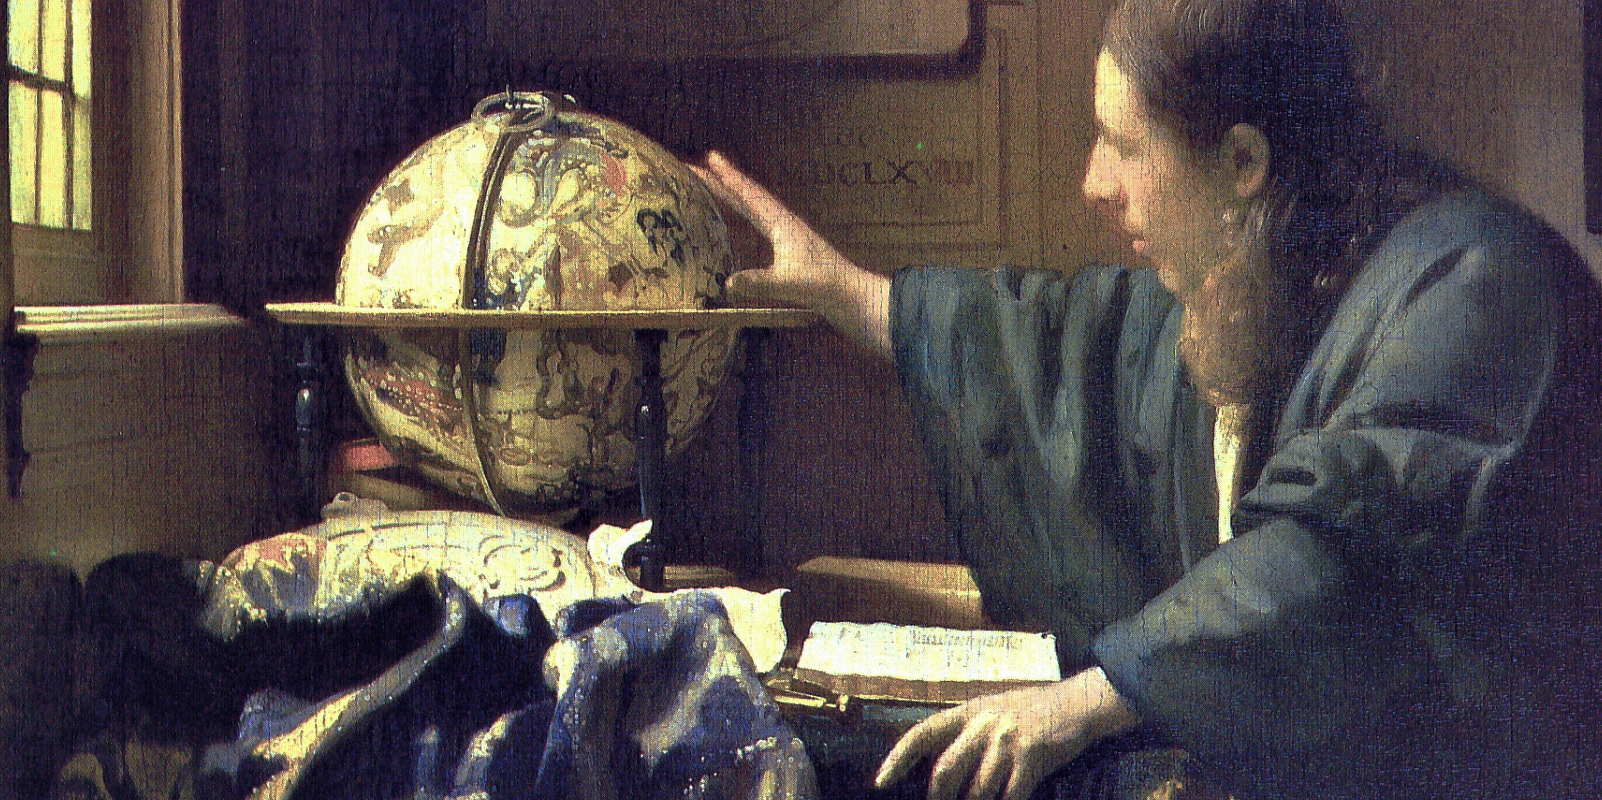 man looking at and touching a globe of the earth